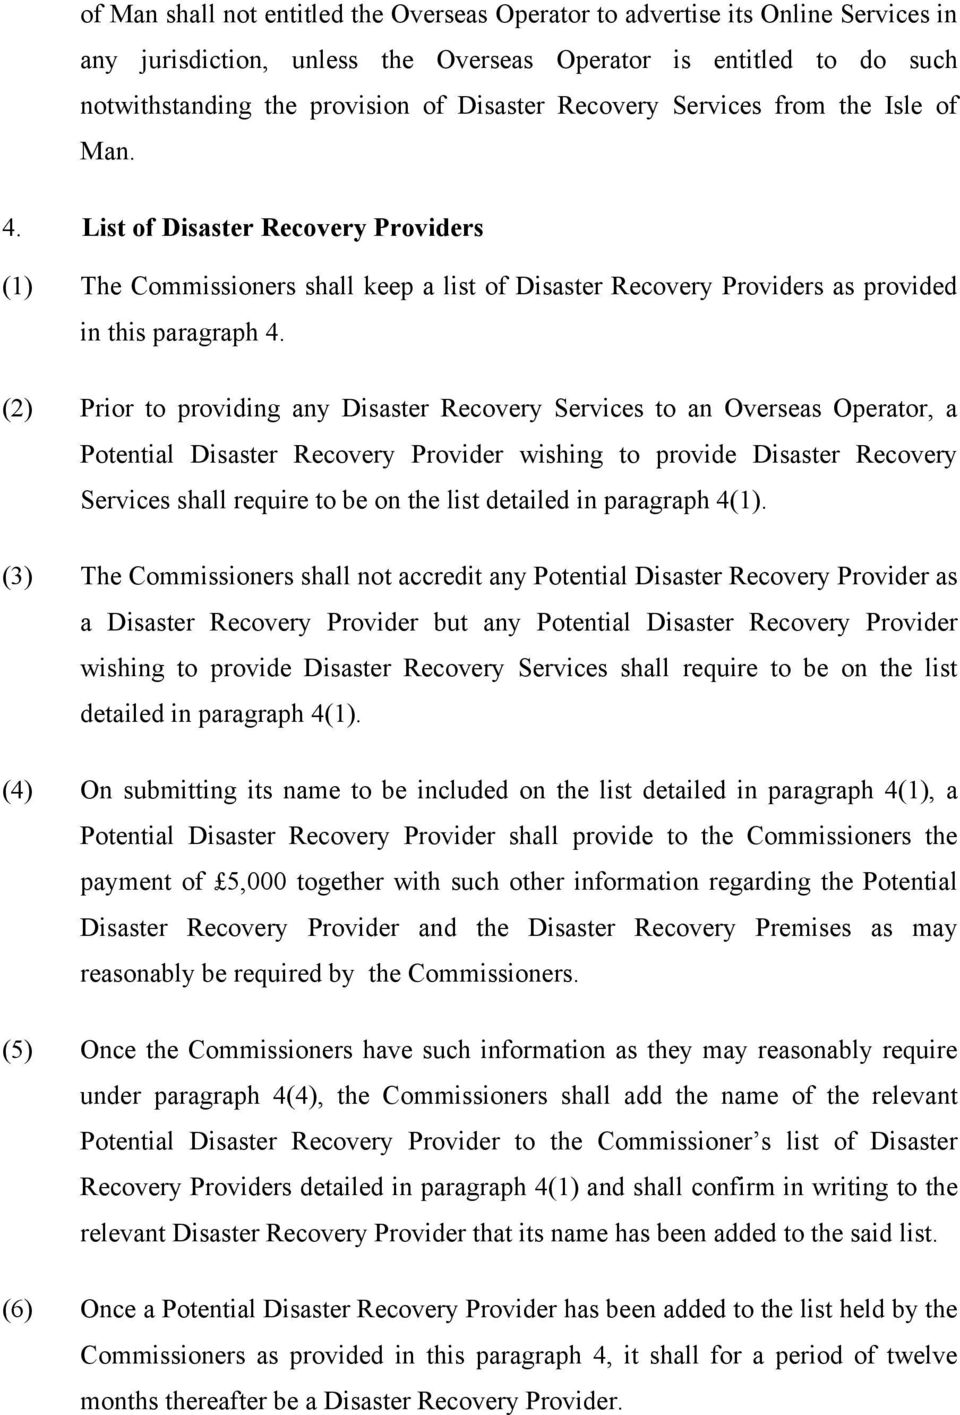 (2) Prior to providing any Disaster Recovery Services to an Overseas Operator, a Potential Disaster Recovery Provider wishing to provide Disaster Recovery Services shall require to be on the list